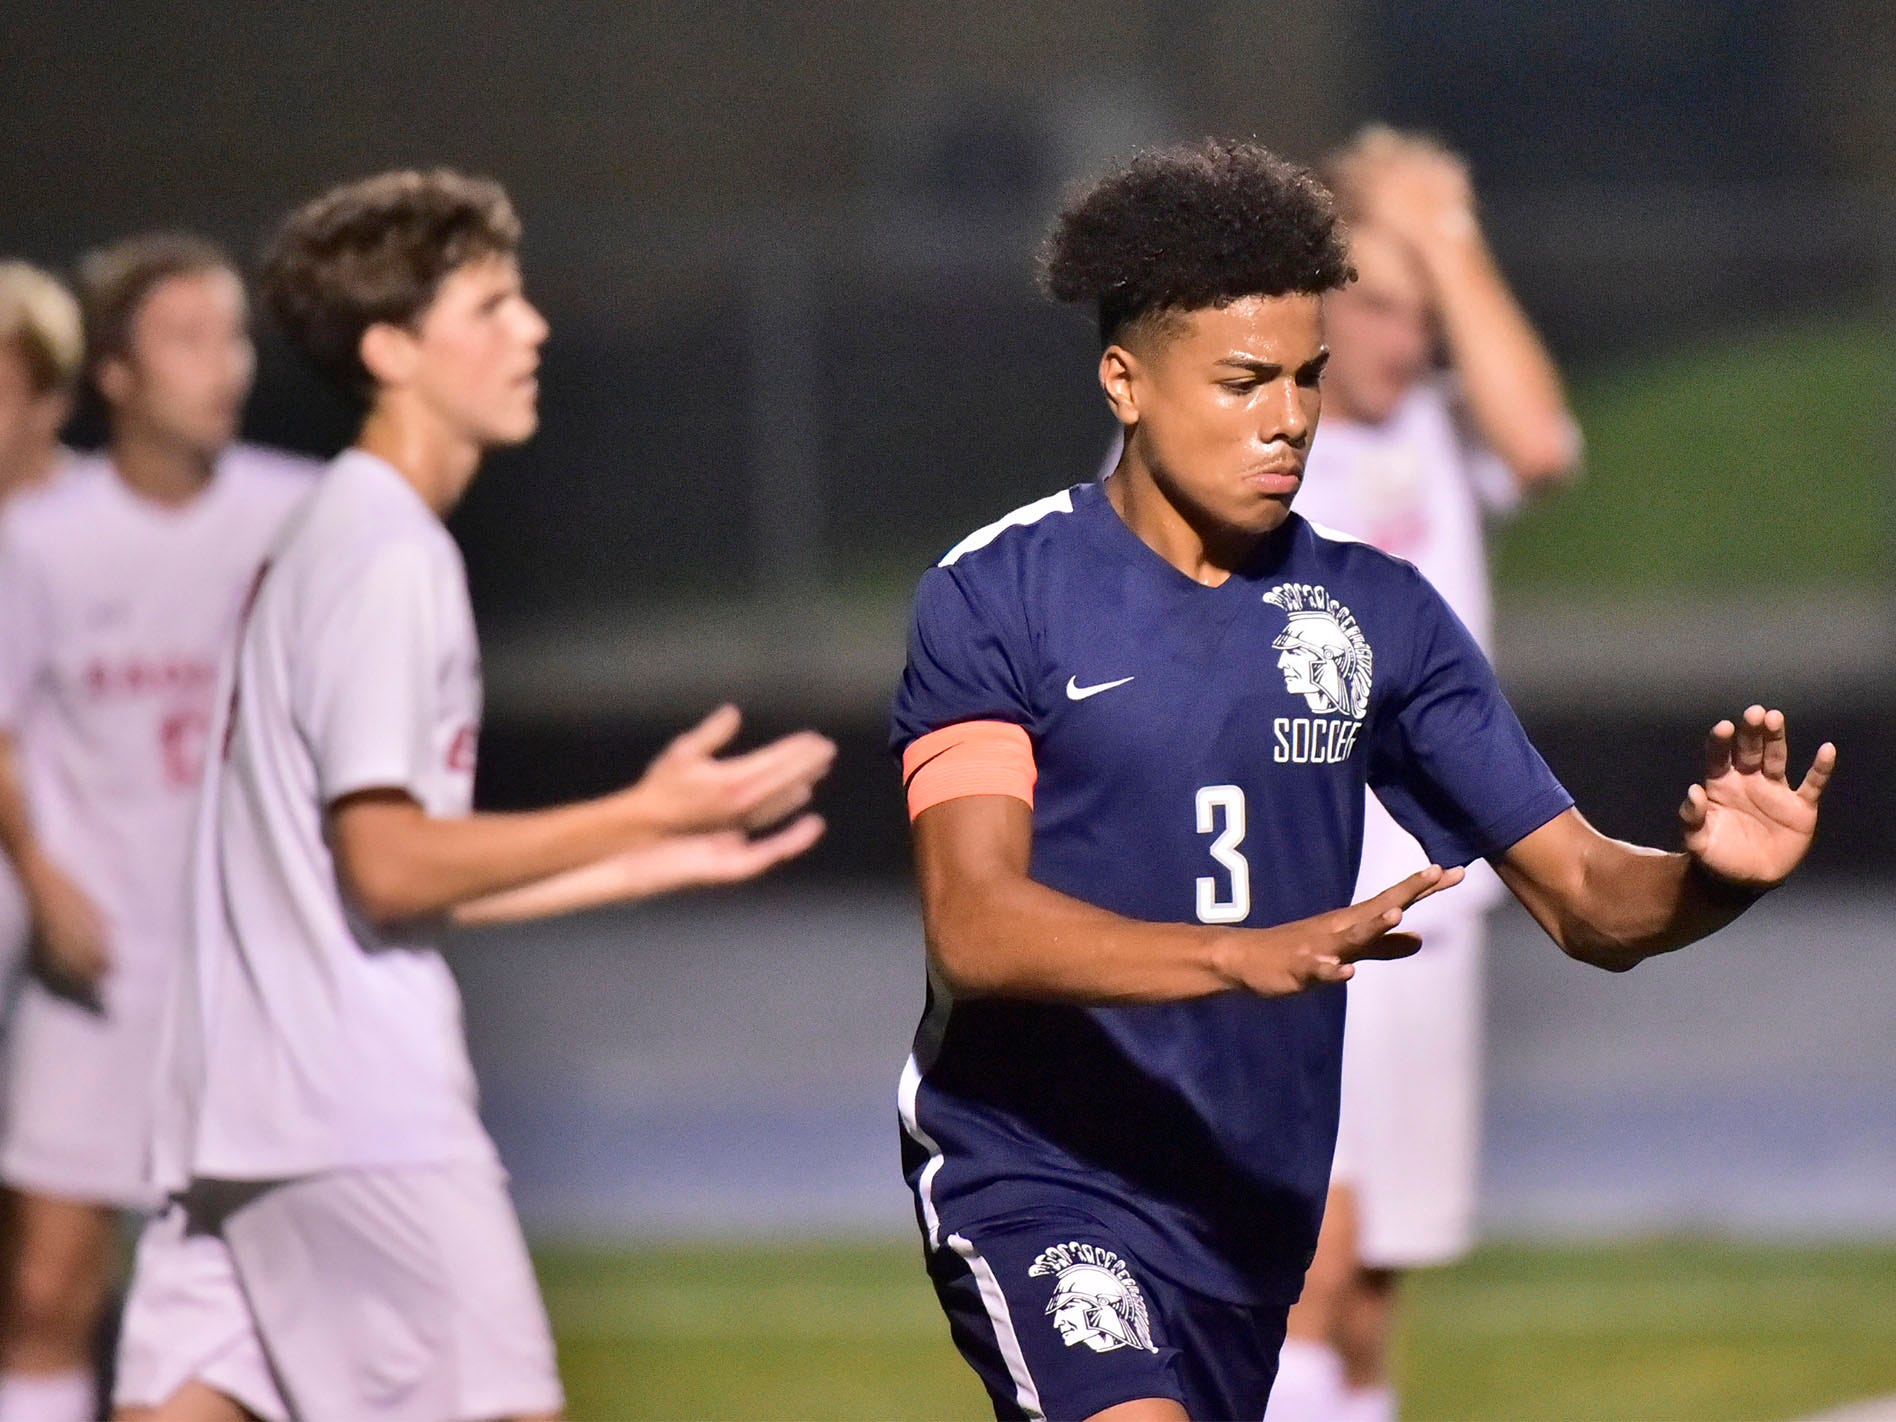 Chambersburg's Ebe Hewitt (3) celebrates a score over CV. Chambersburg hosted Cumberland Valley in PIAA soccer on Thursday, Oct. 4, 2018, but dropped a 2-1 match in double overtime.